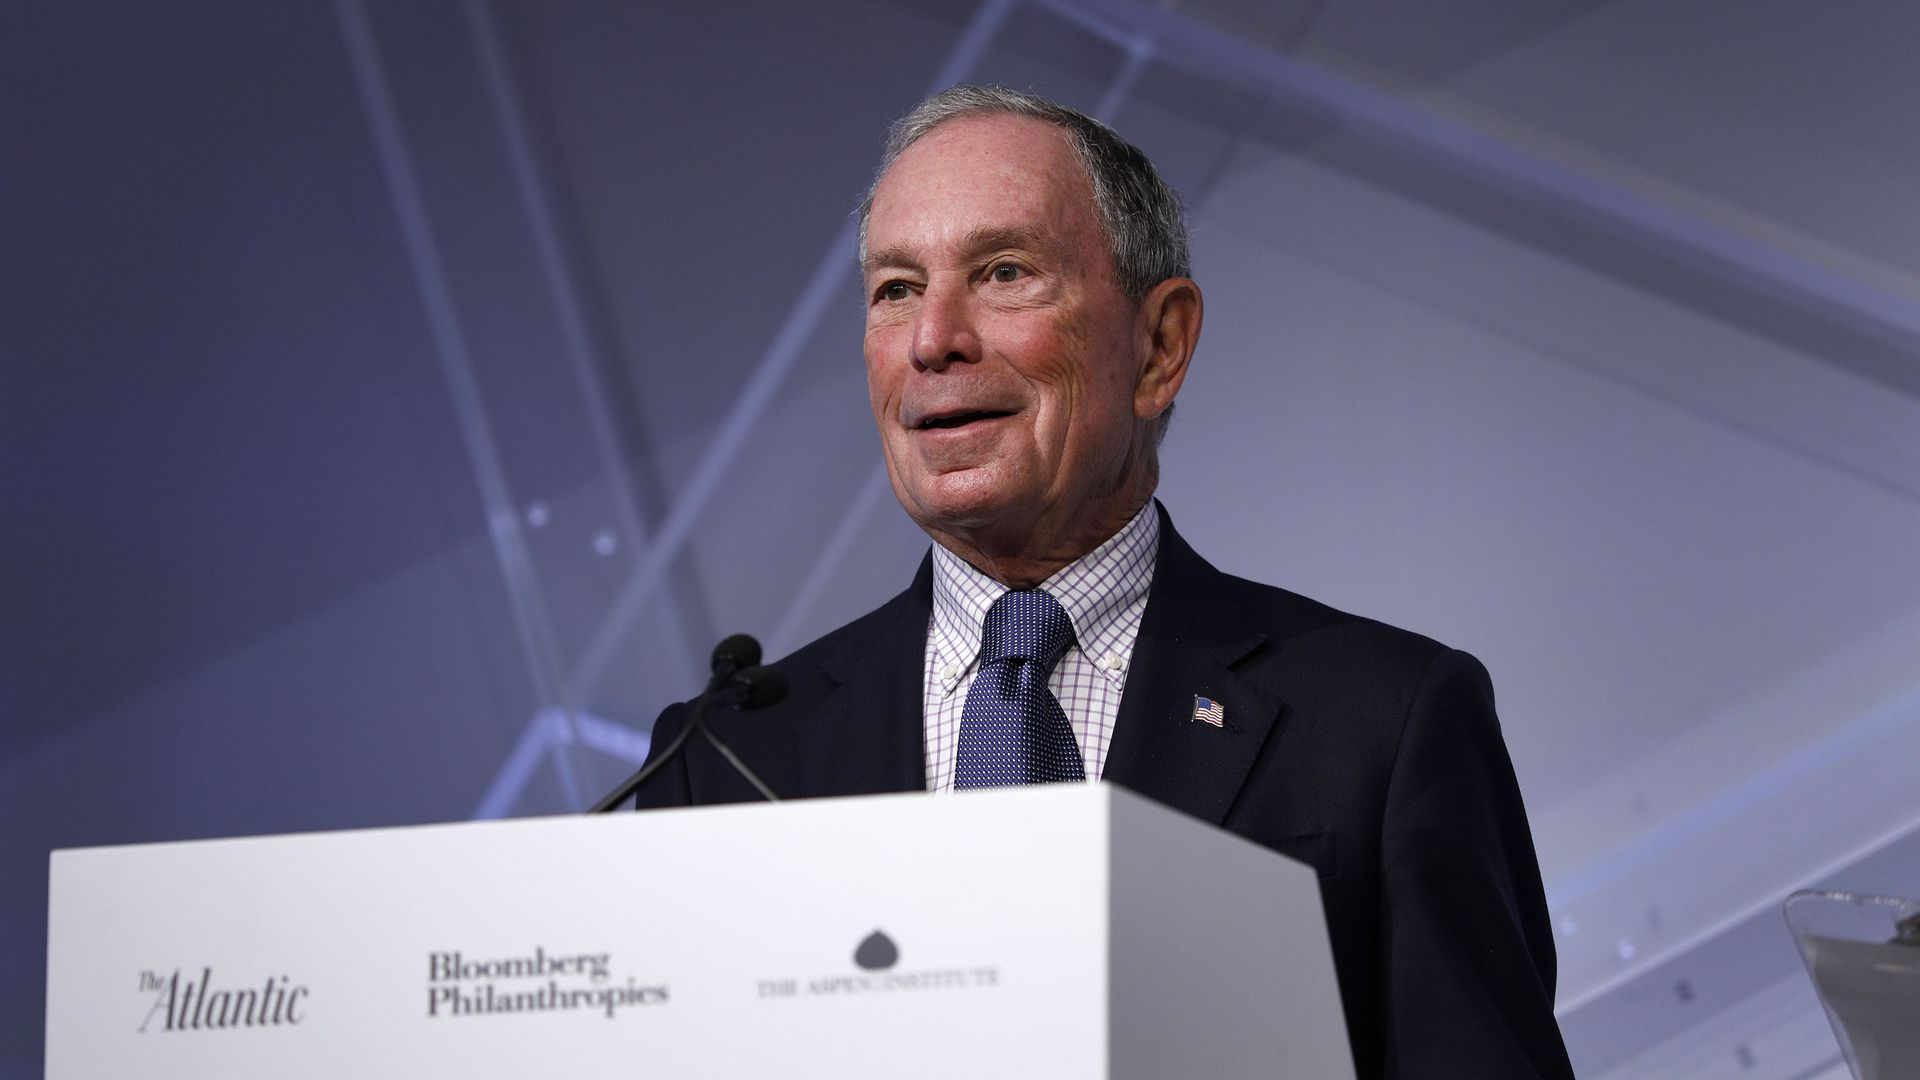 Michael Bloomberg, billionaire and former Mayor of New York City.